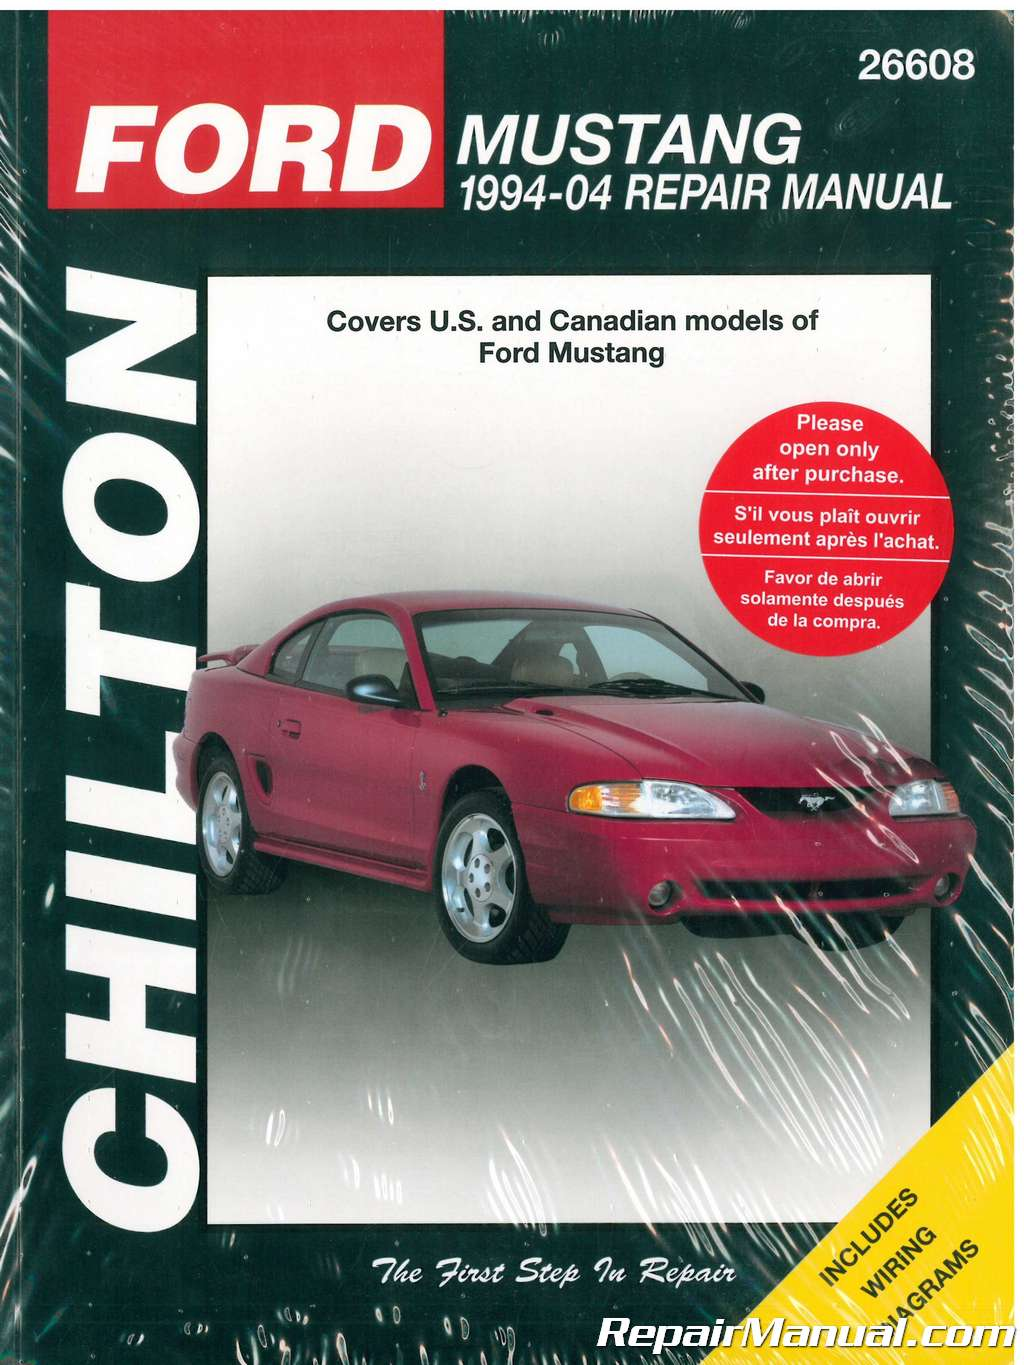 Chilton Ford Mustang Repair Manual on Canadian Tractor Equipment